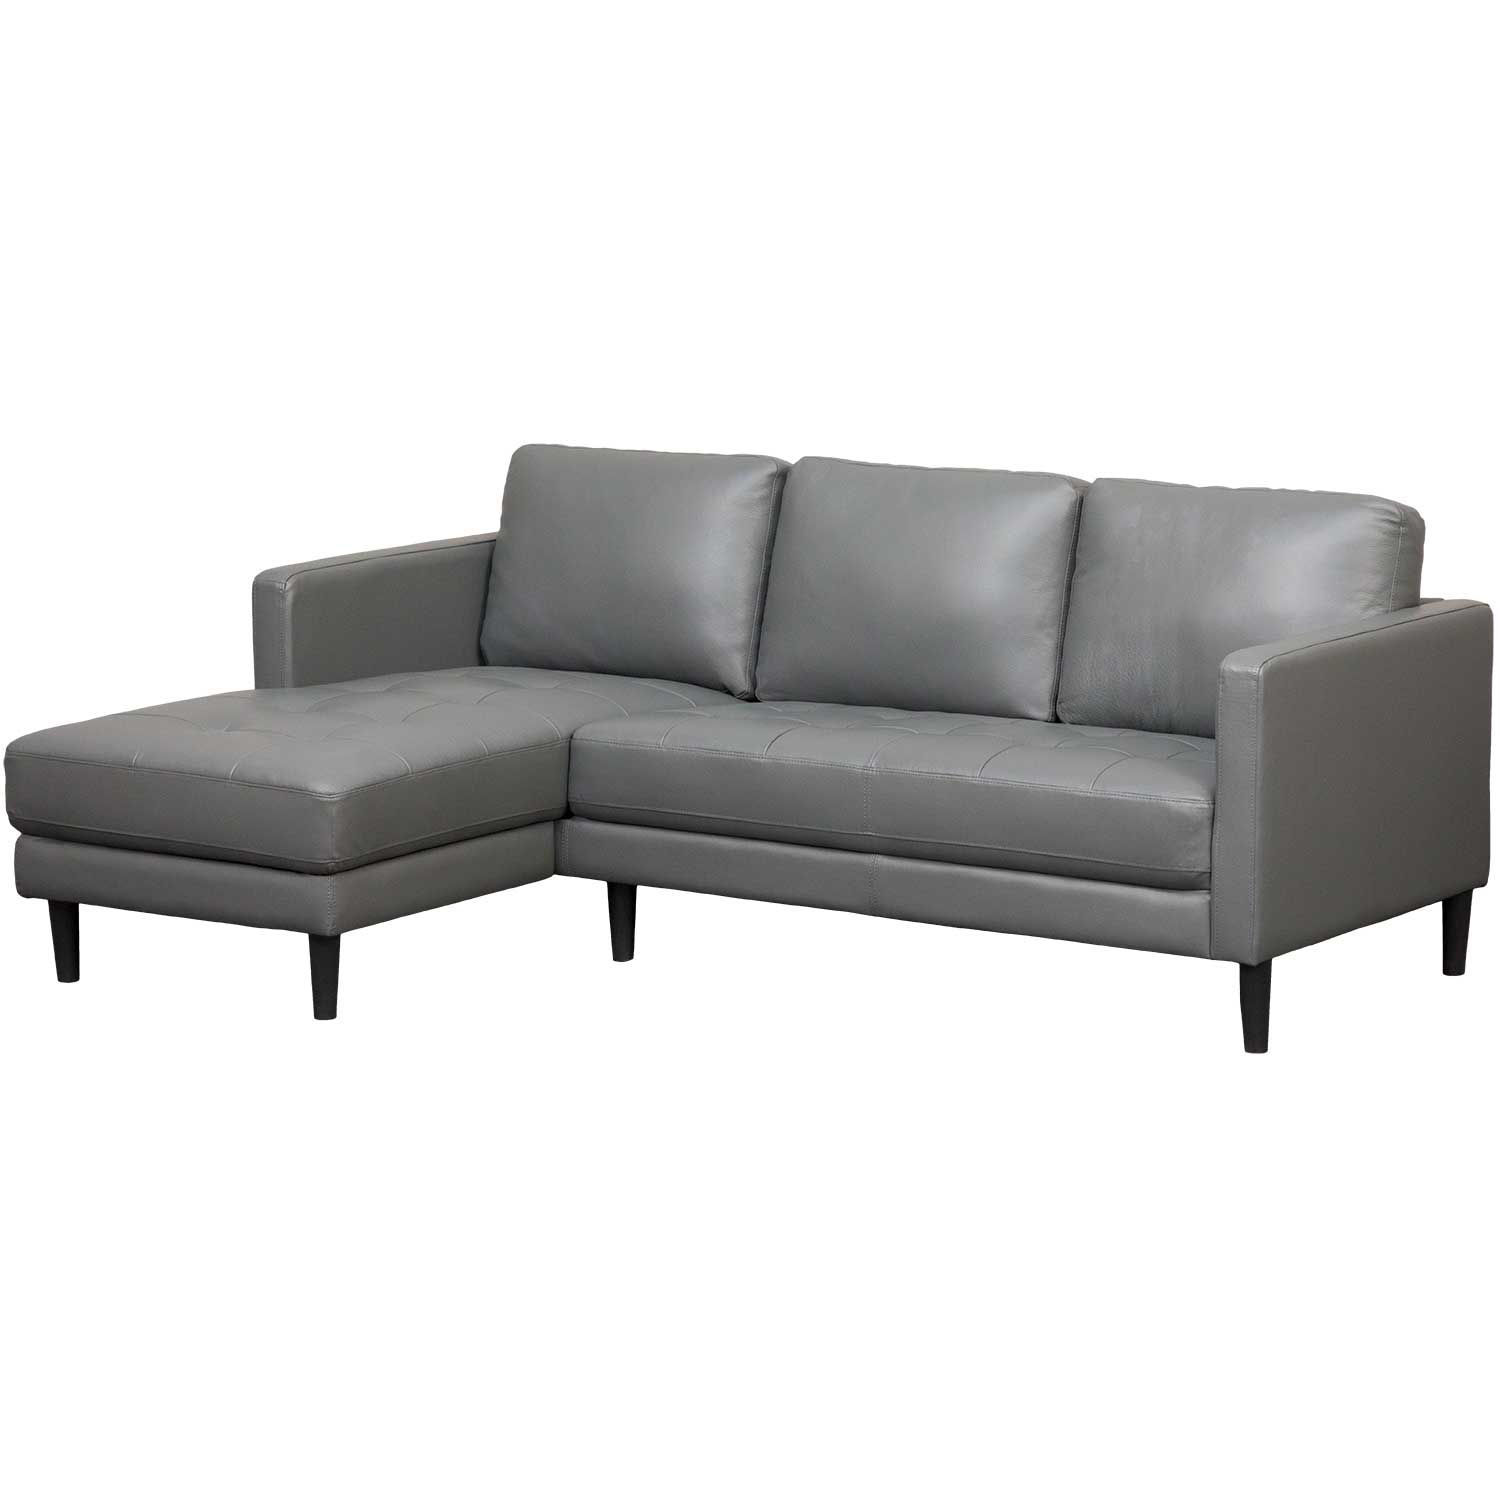 Picture of Rebel Leather Sofa with LAF Chaise